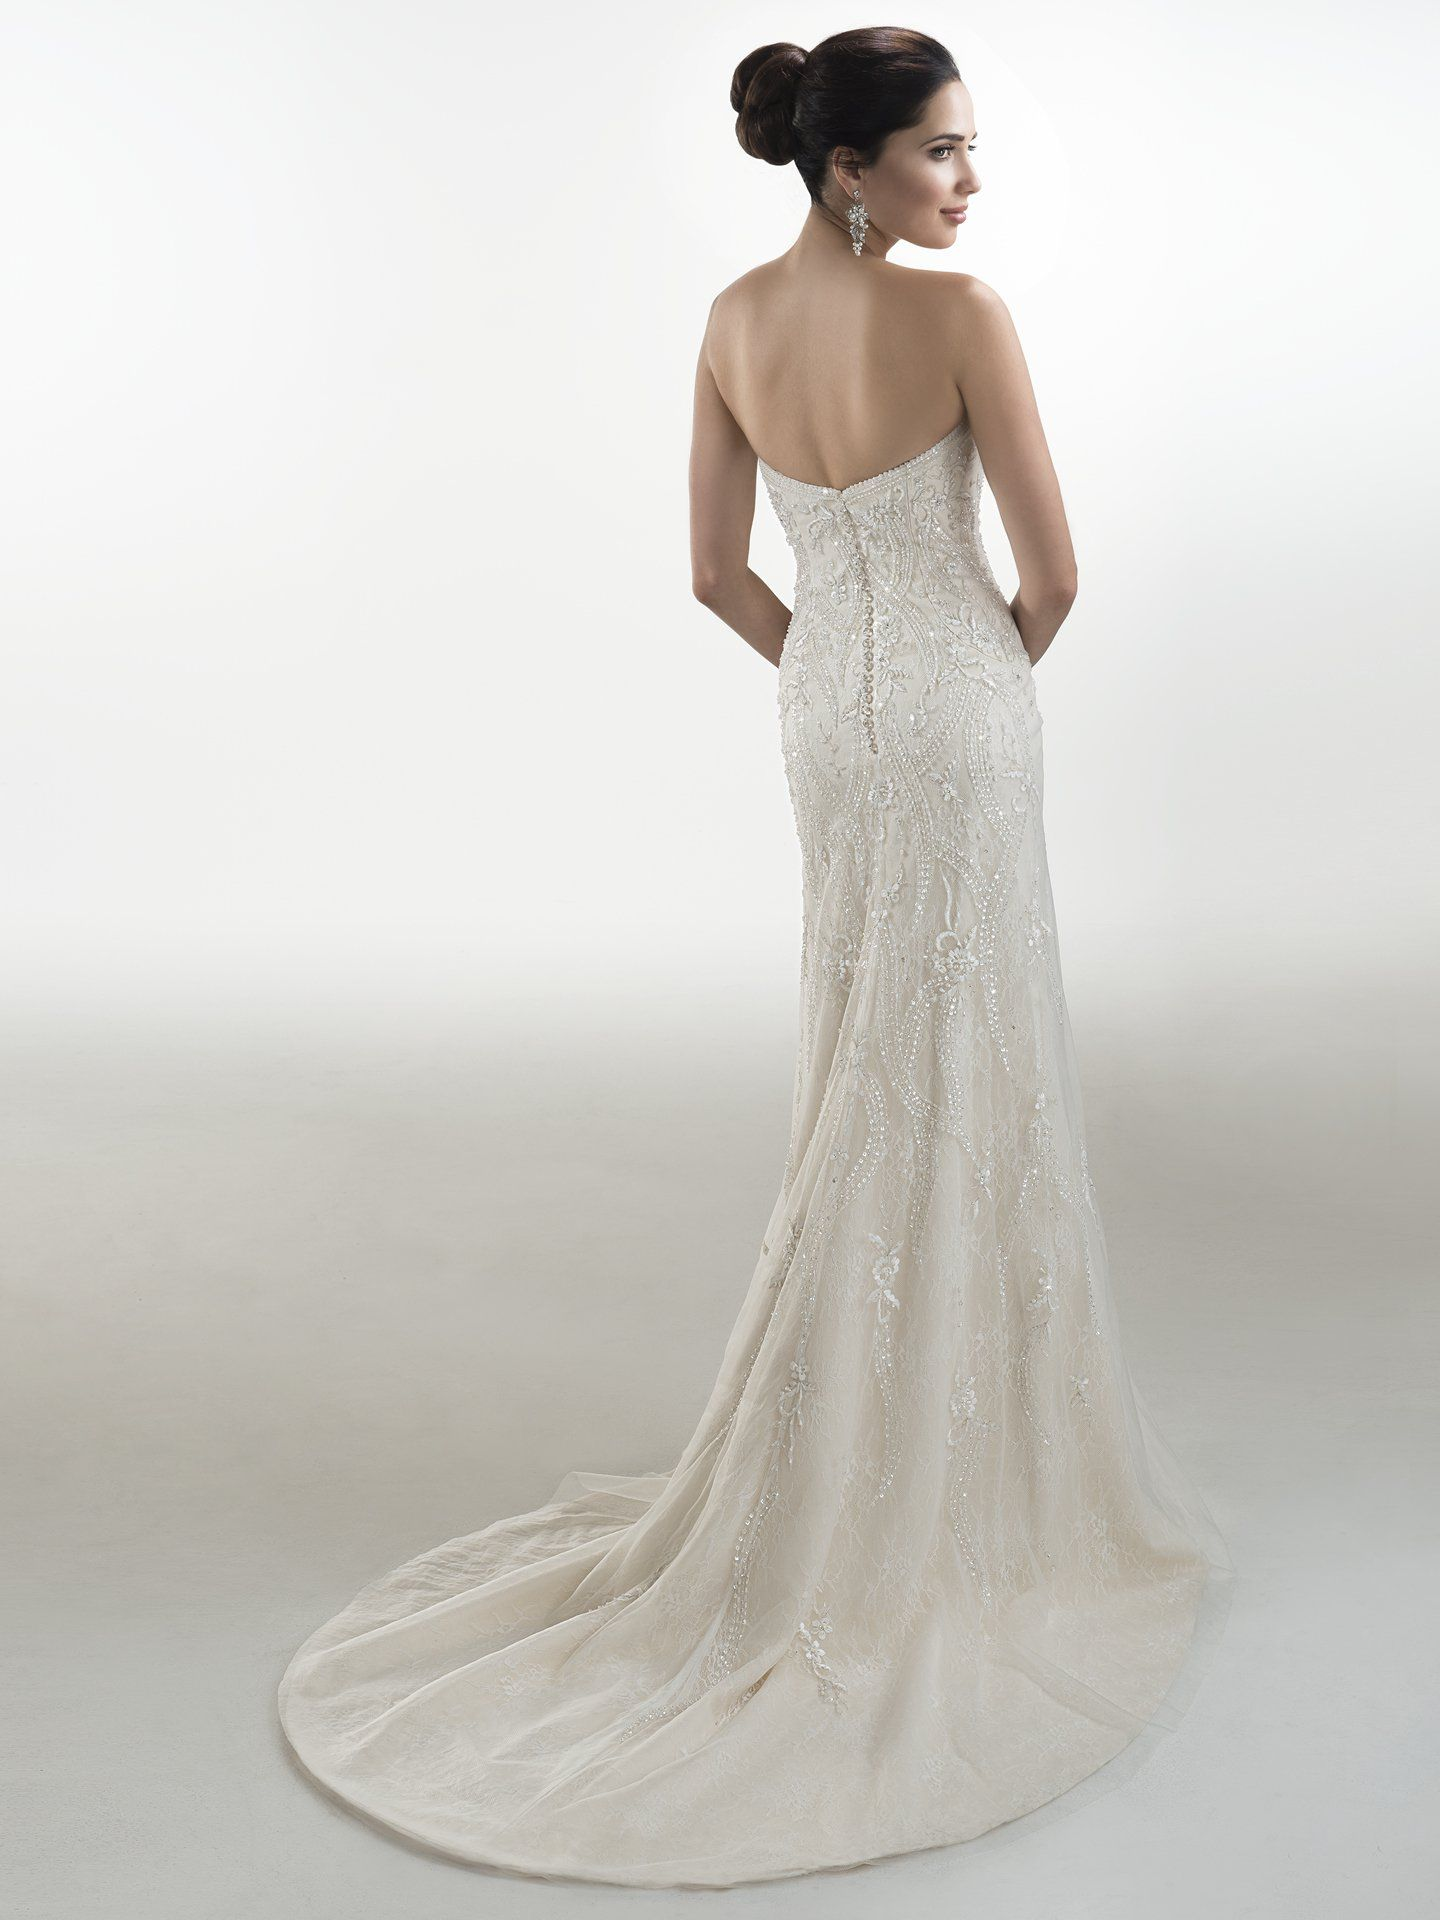 Pin by Destiny Bridal on Maggie Sottero | Pinterest | Maggie sottero ...